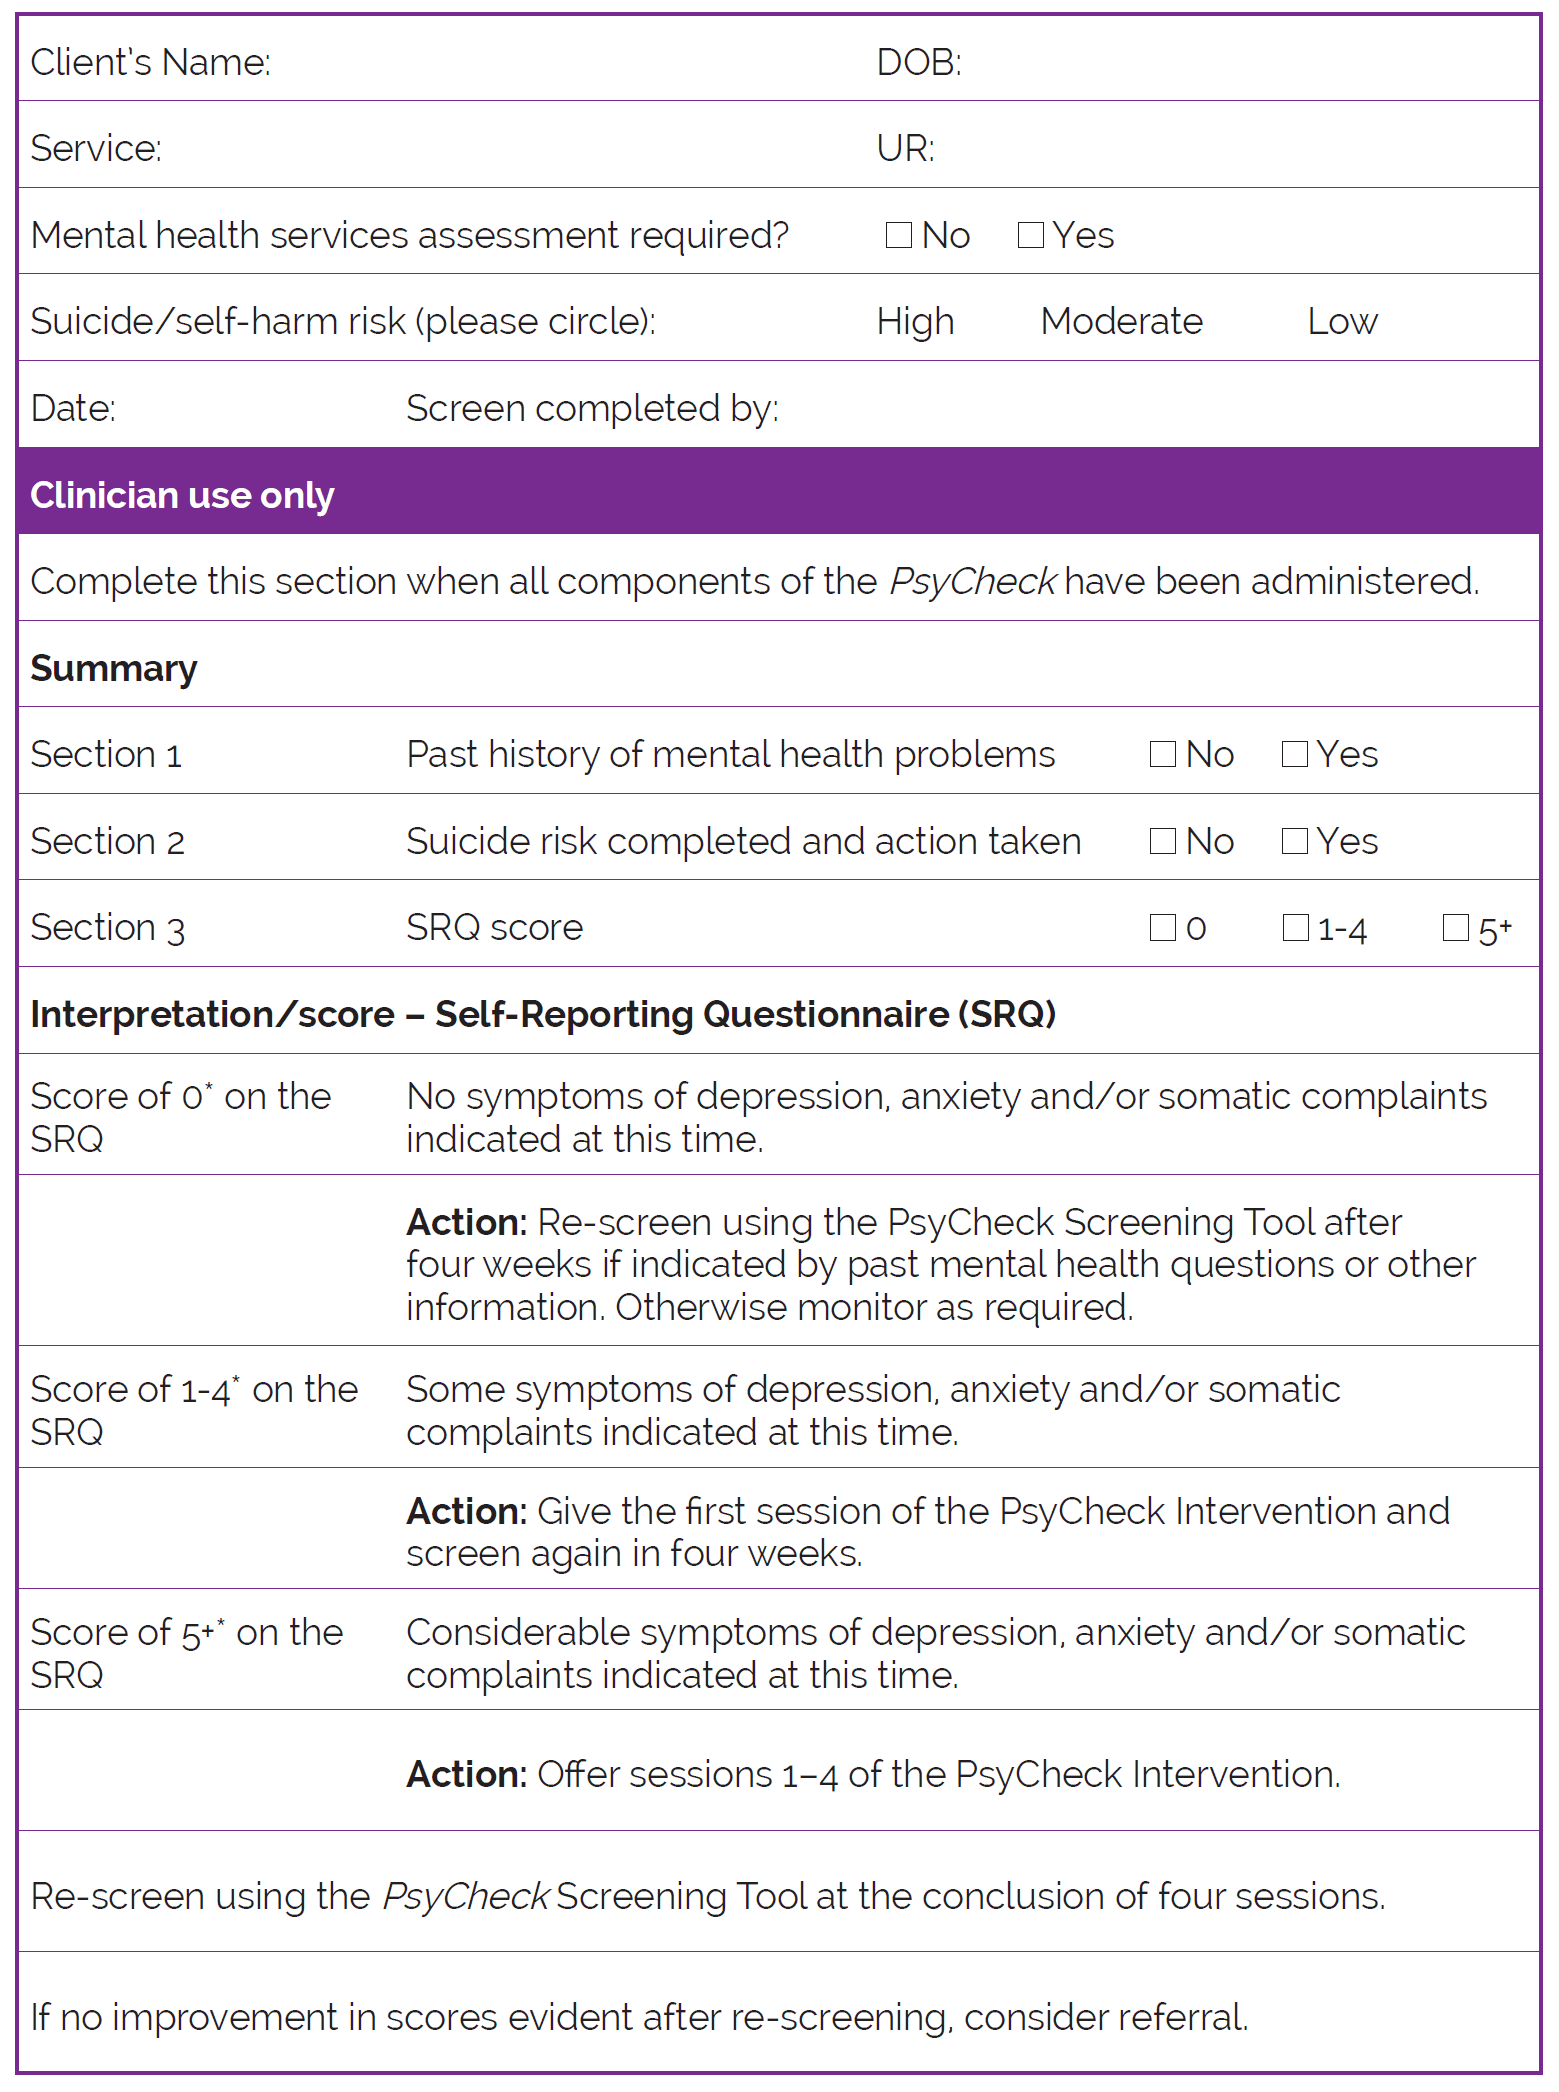 This Section Provides A Form For The Psycheck Screening Tool